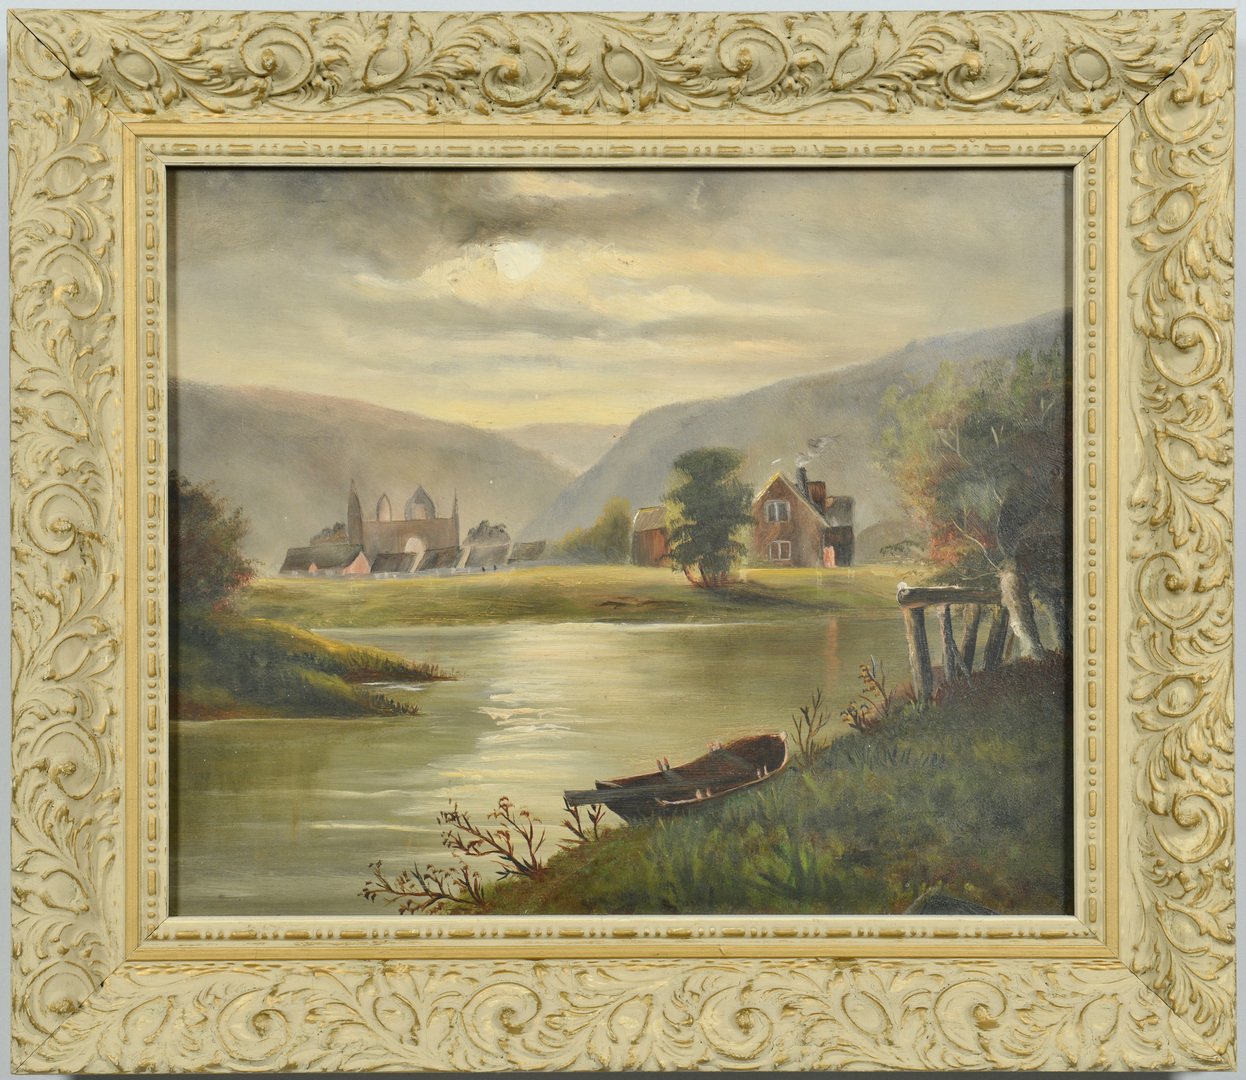 Lot 3088253: Two 19th c. European Landscape Oils on Board